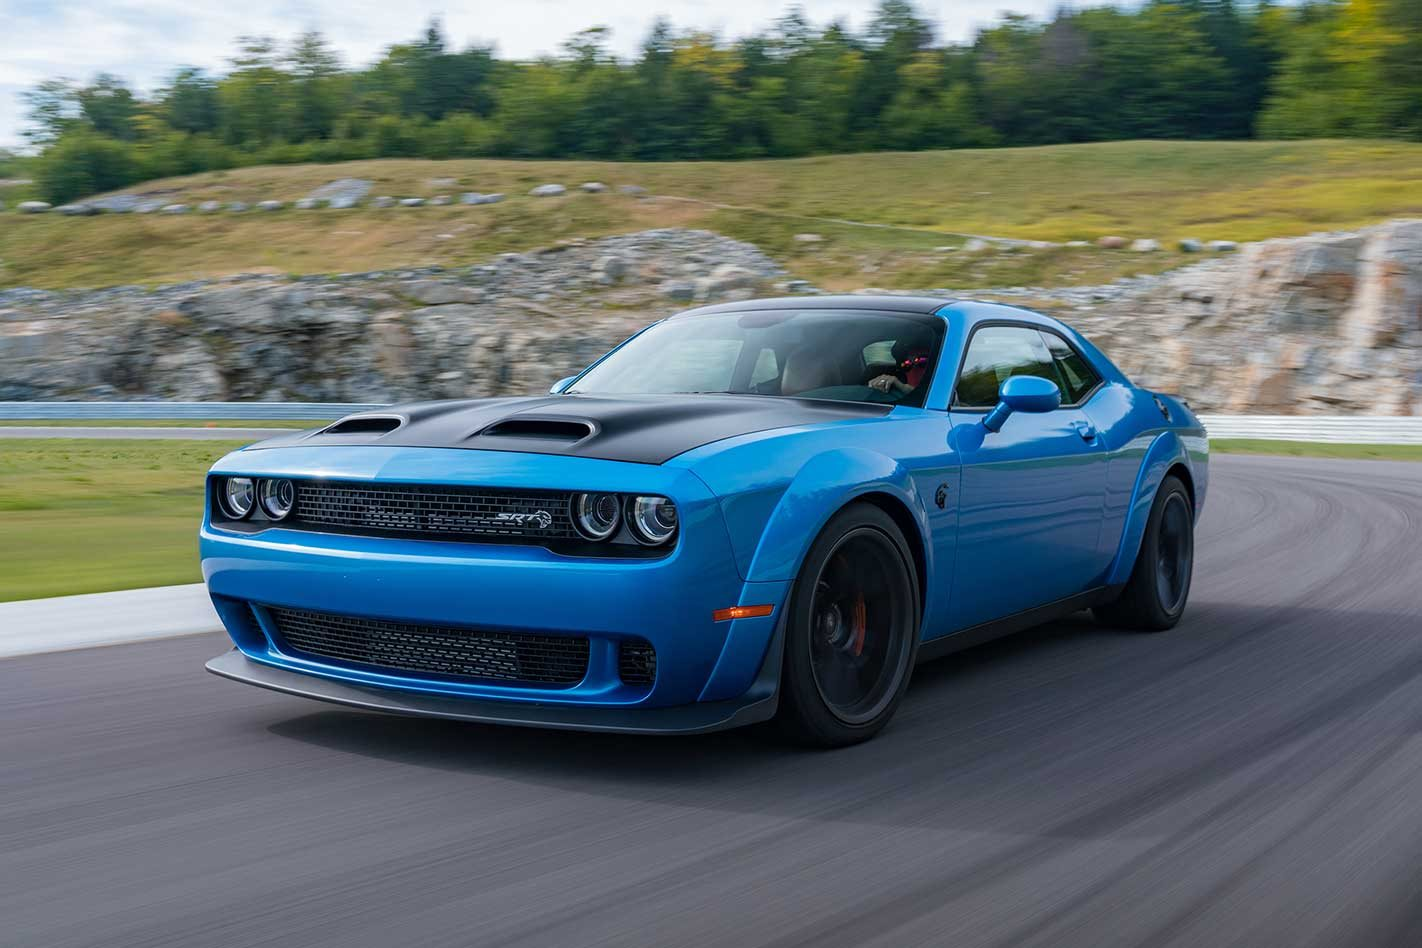 2018 Dodge Challenger Srt Hellcat Redeye Performance Review